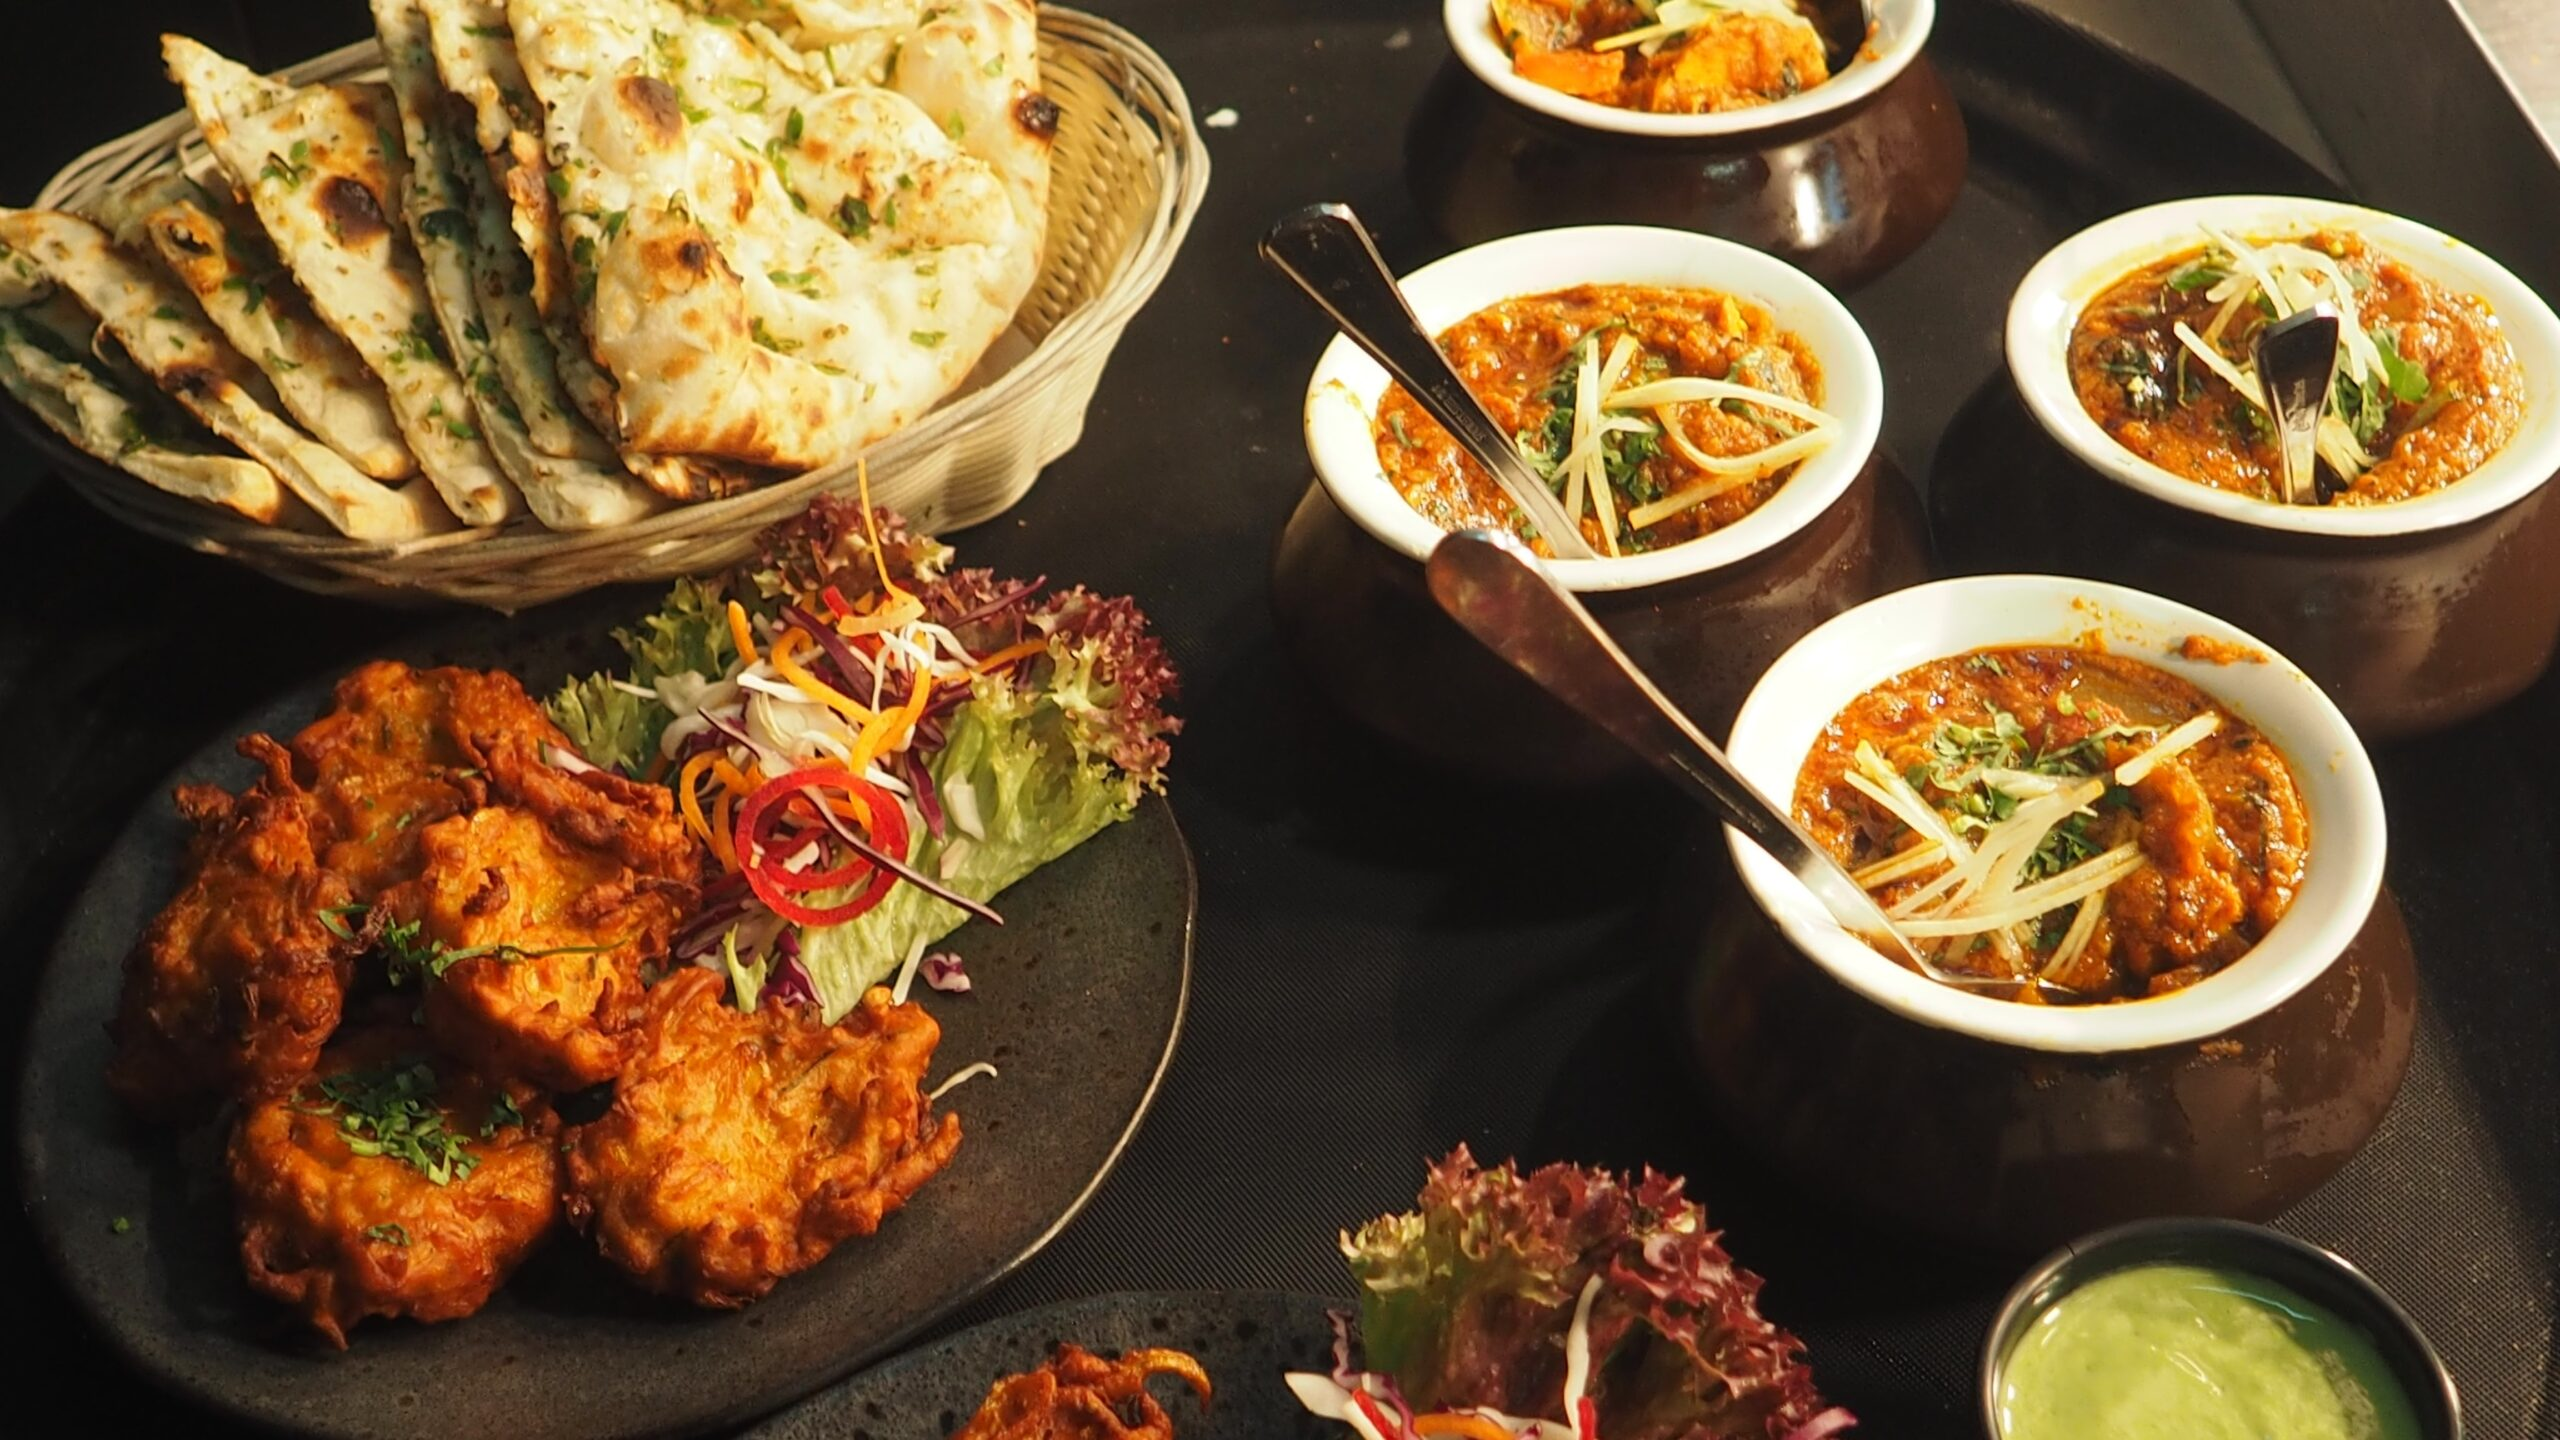 Taste of Raj Indian Restaurant in black heath